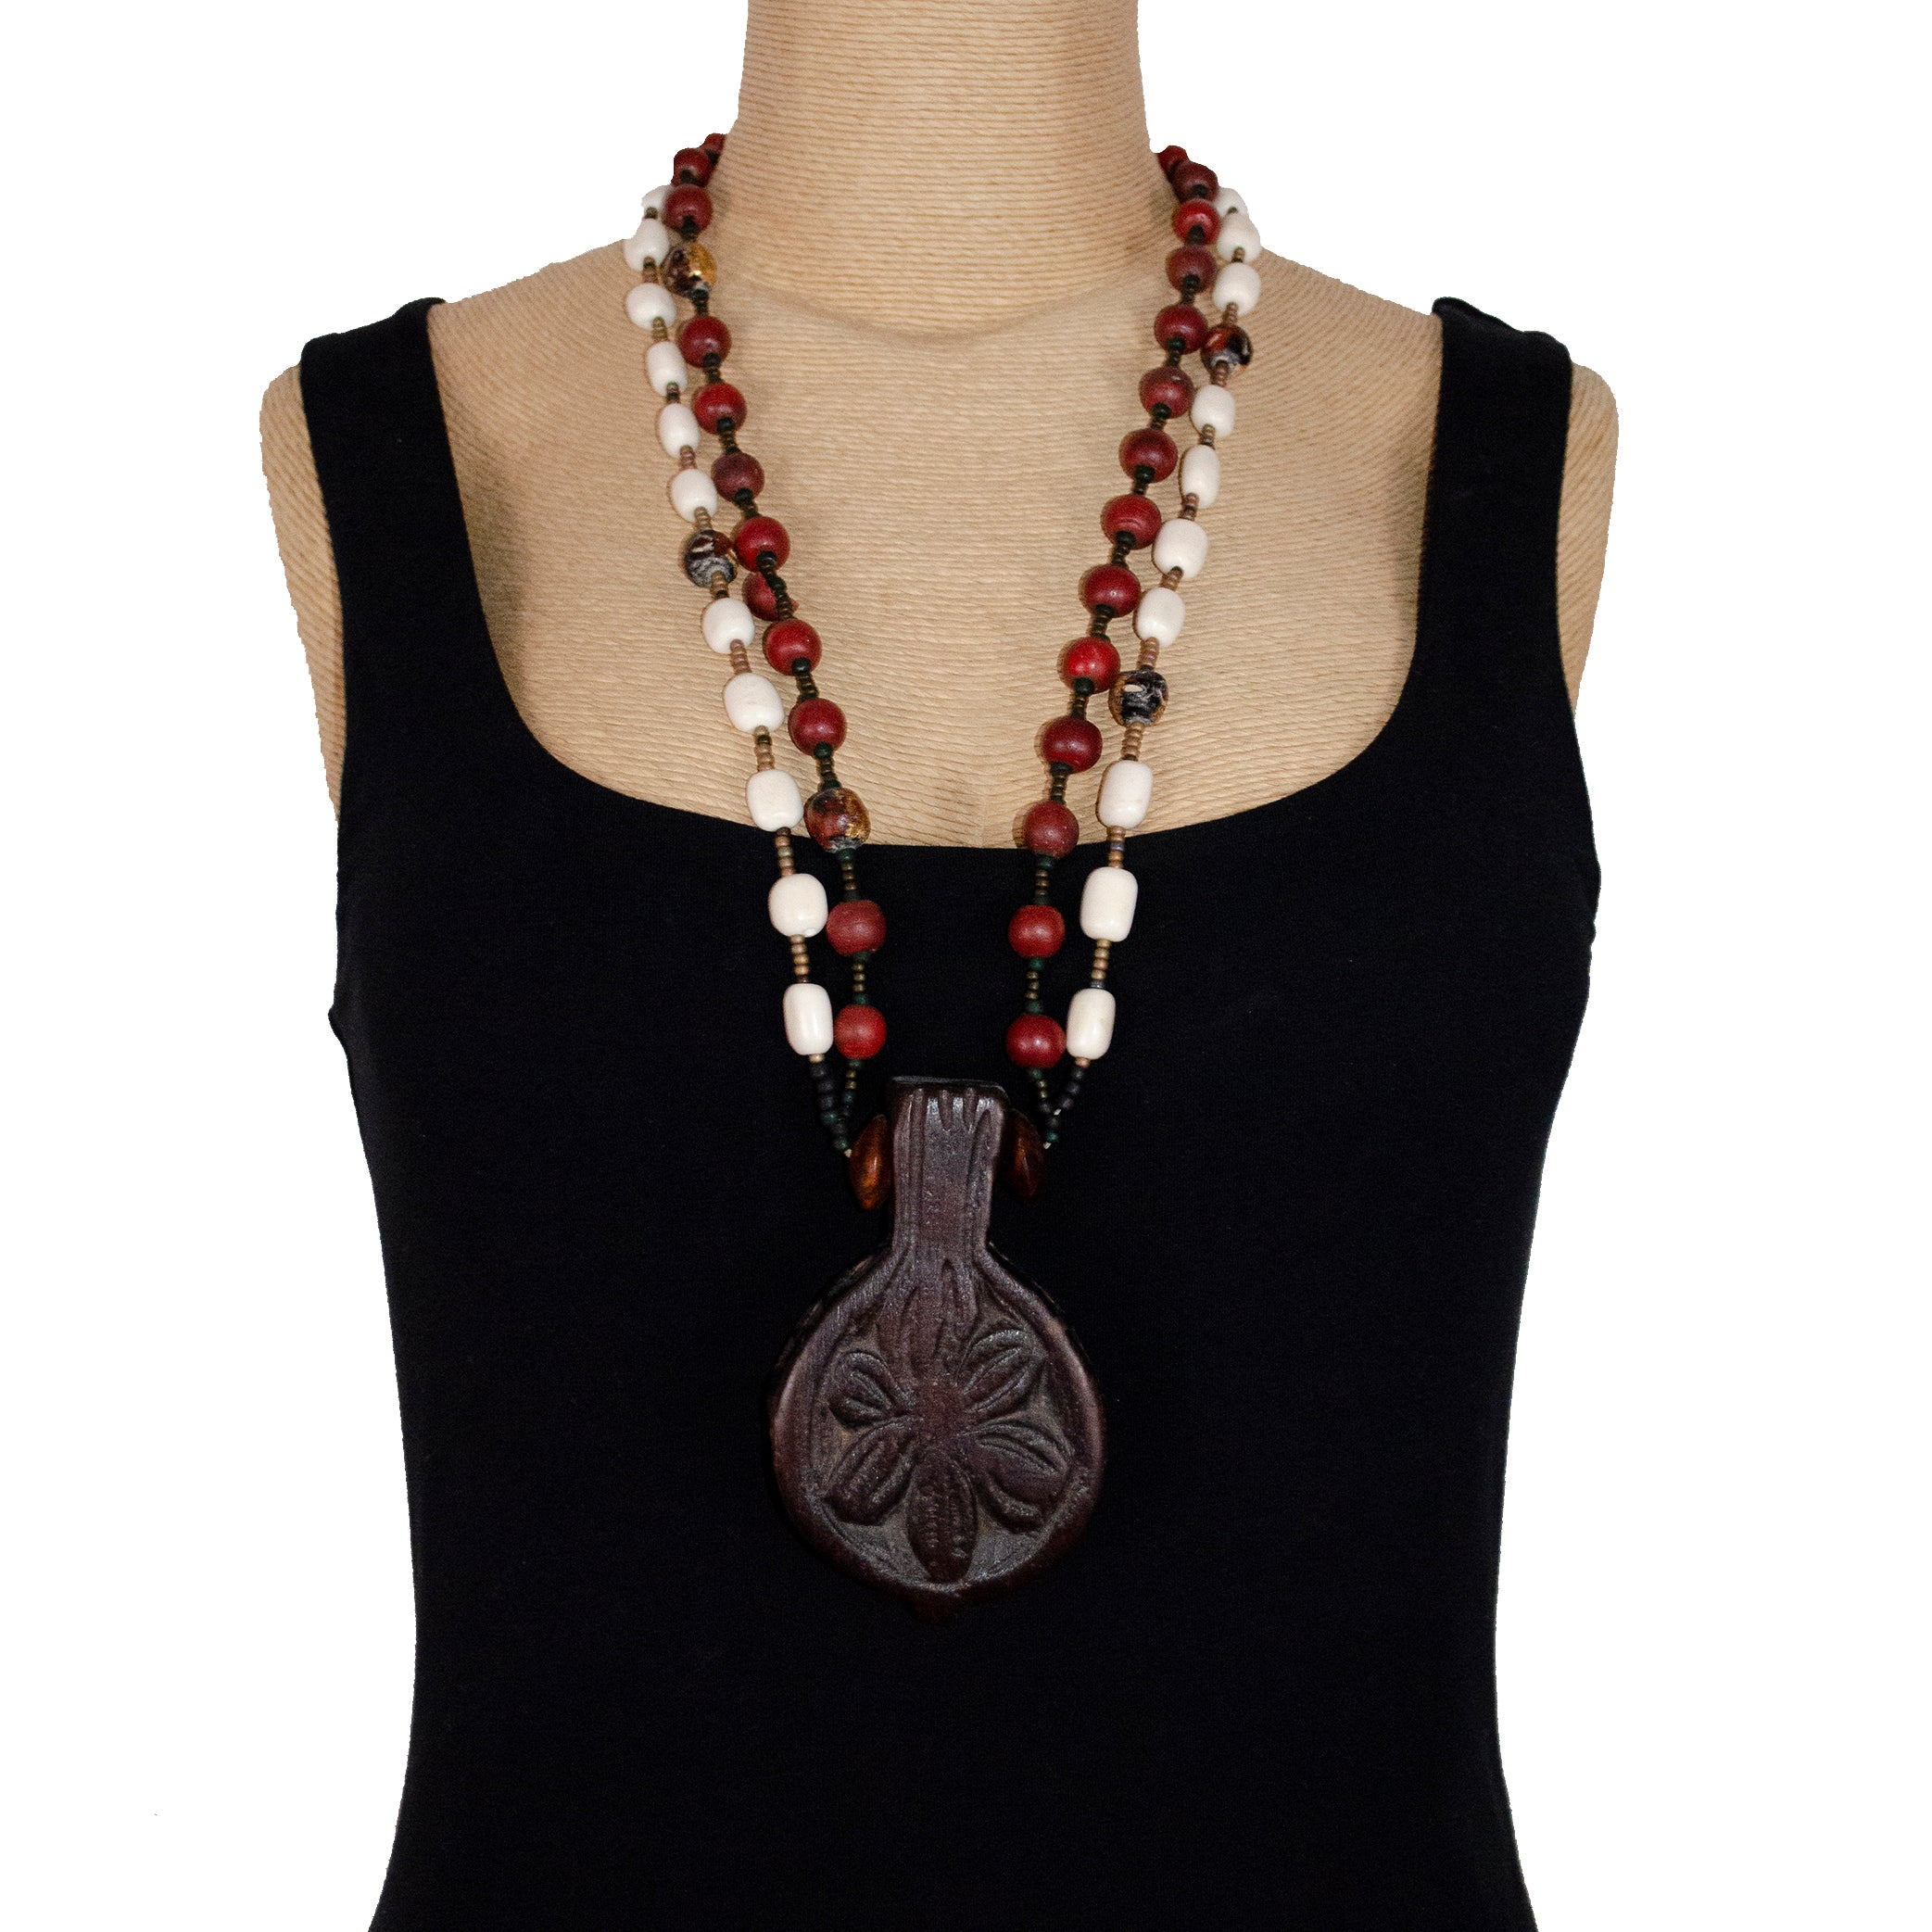 Marlene Bolotsky Necklace, Carved Wood Talisman